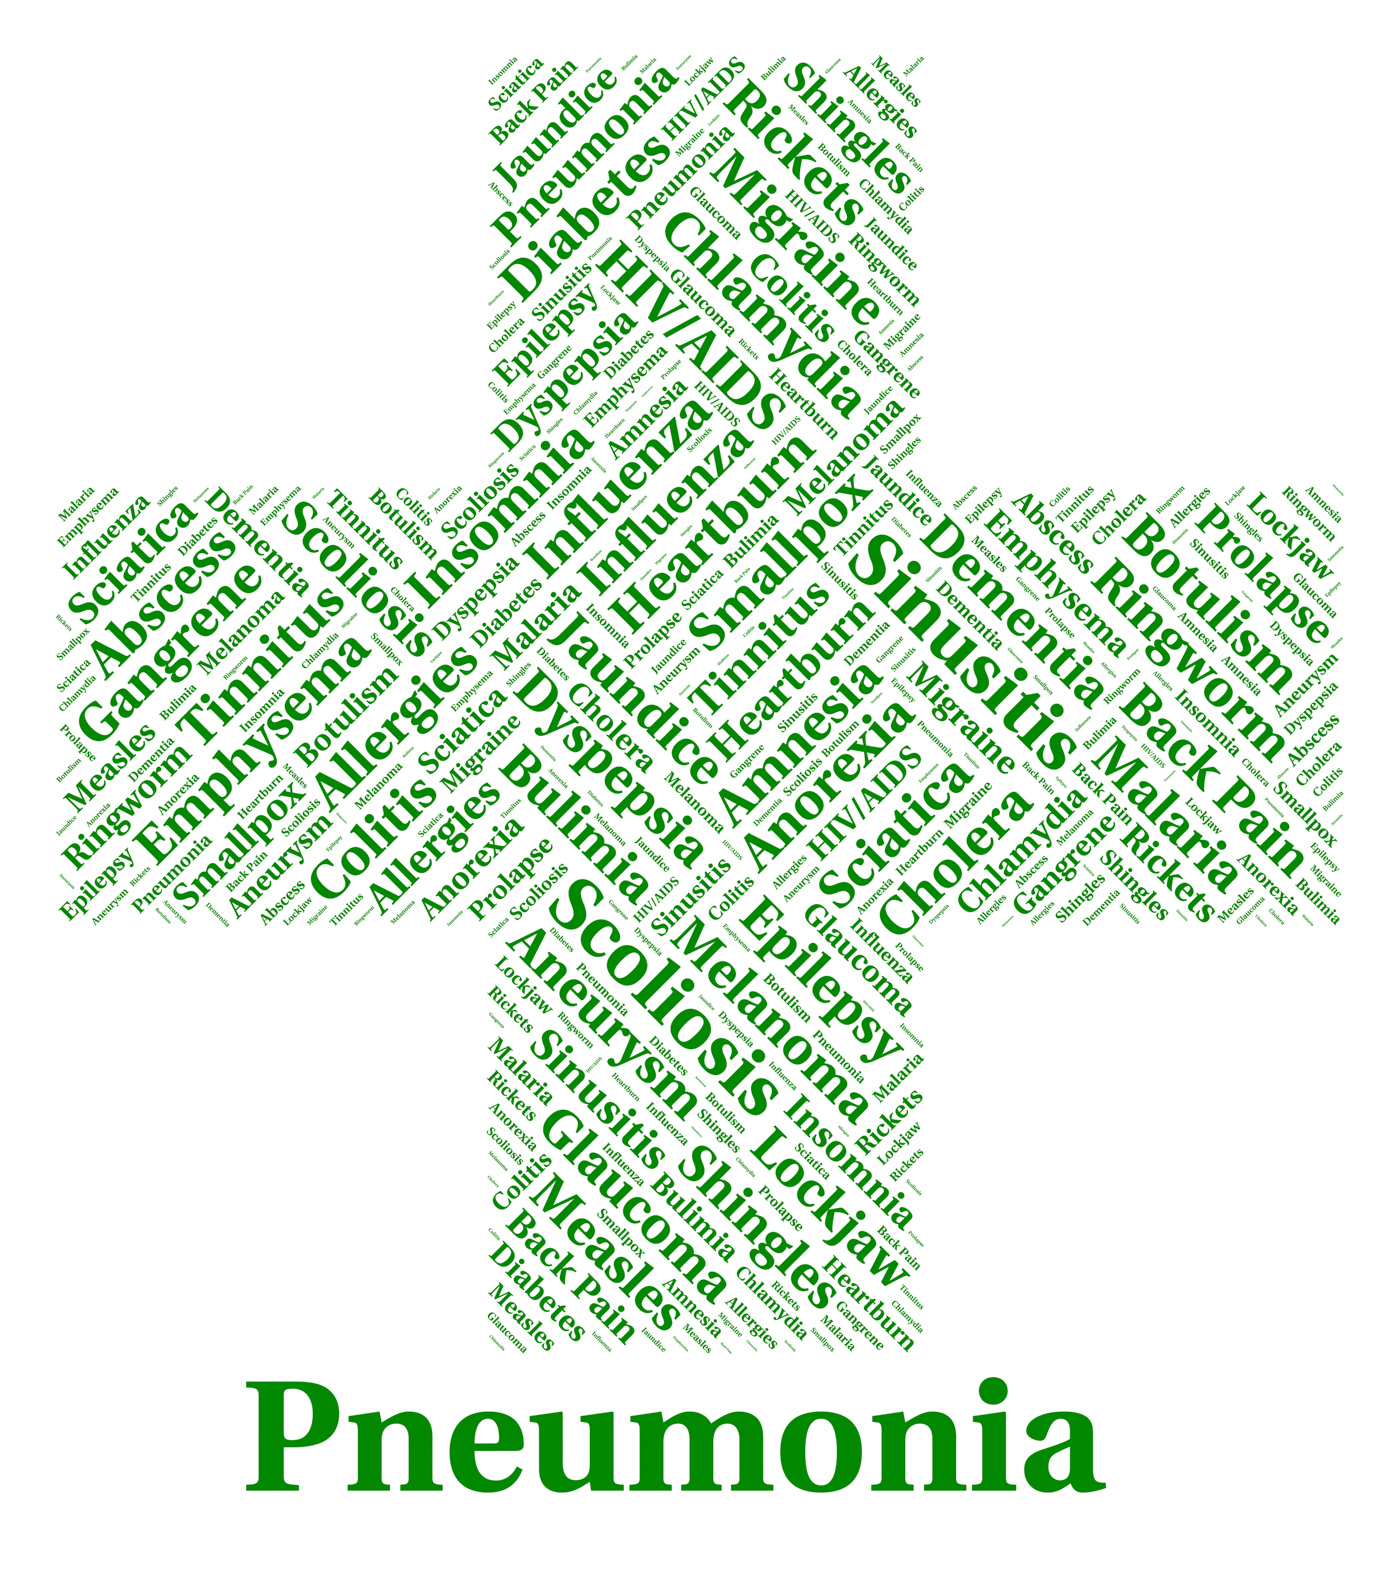 Pneumonia illness represents poor health and ailment photo